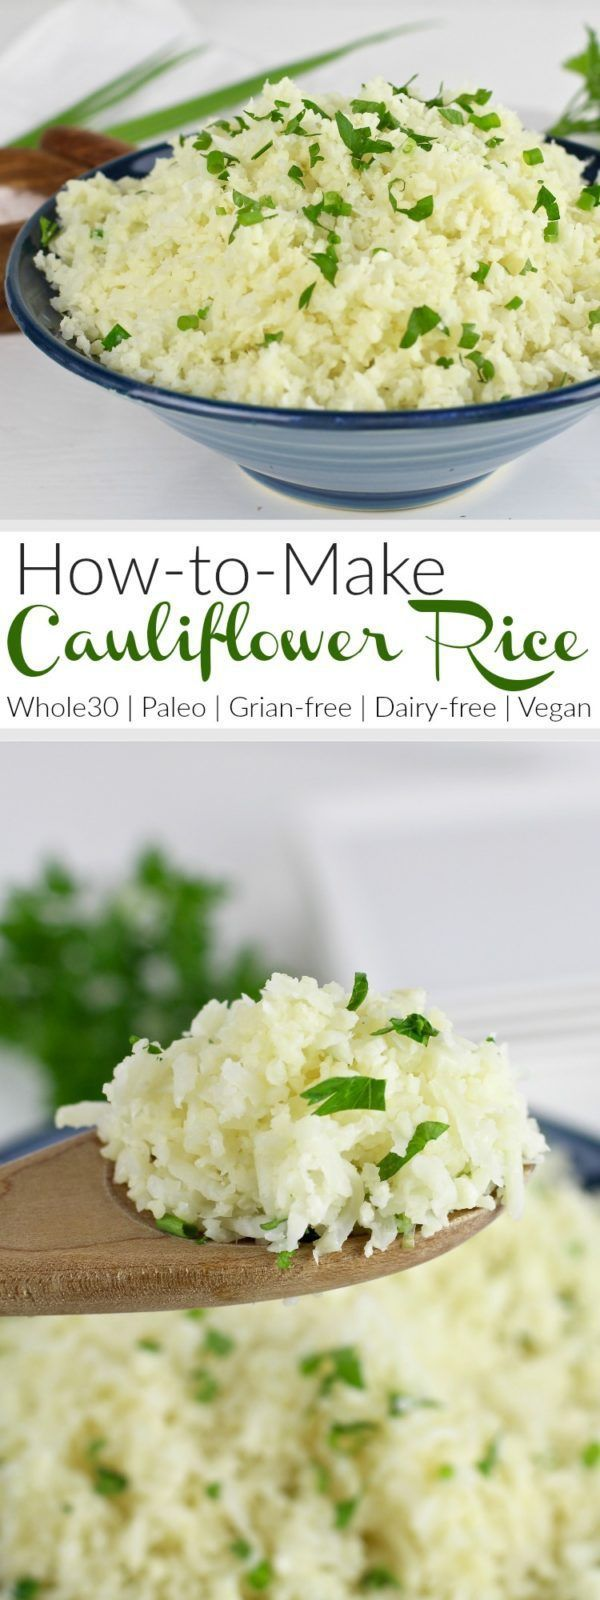 How To Make Cauliflower Rice: A step-by-step photo tutorial | Whole30 | Paleo | Gluten-free | Grain-free | Vegan | therealfoords.com